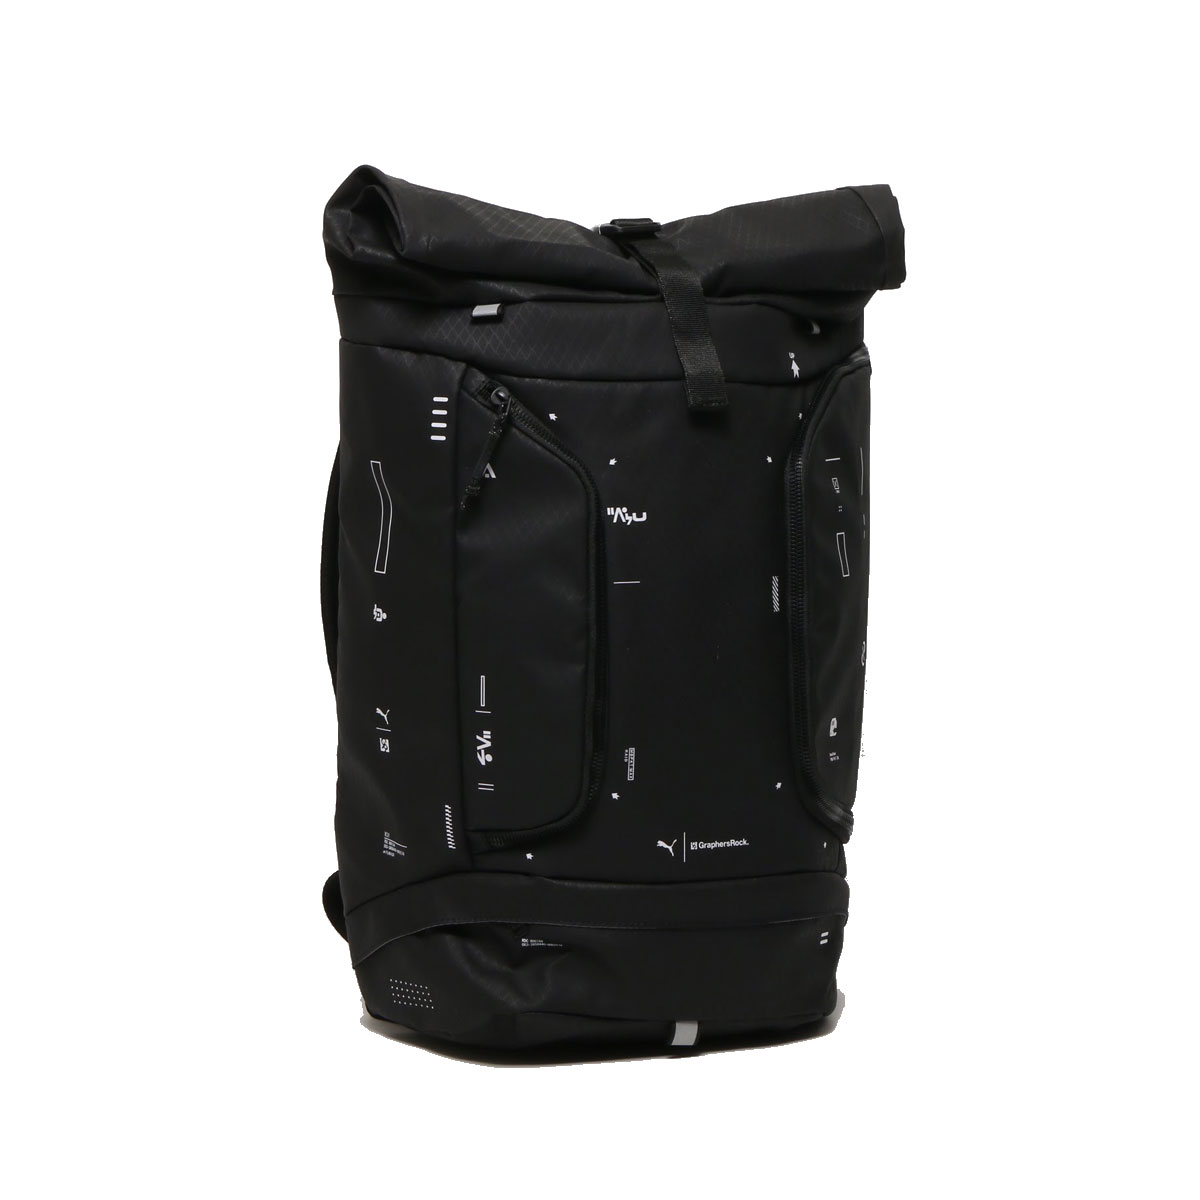 PUMA BACK PACK BY GR(プーマ バックパック BY GR)(PUMA BLACK)18SP-I